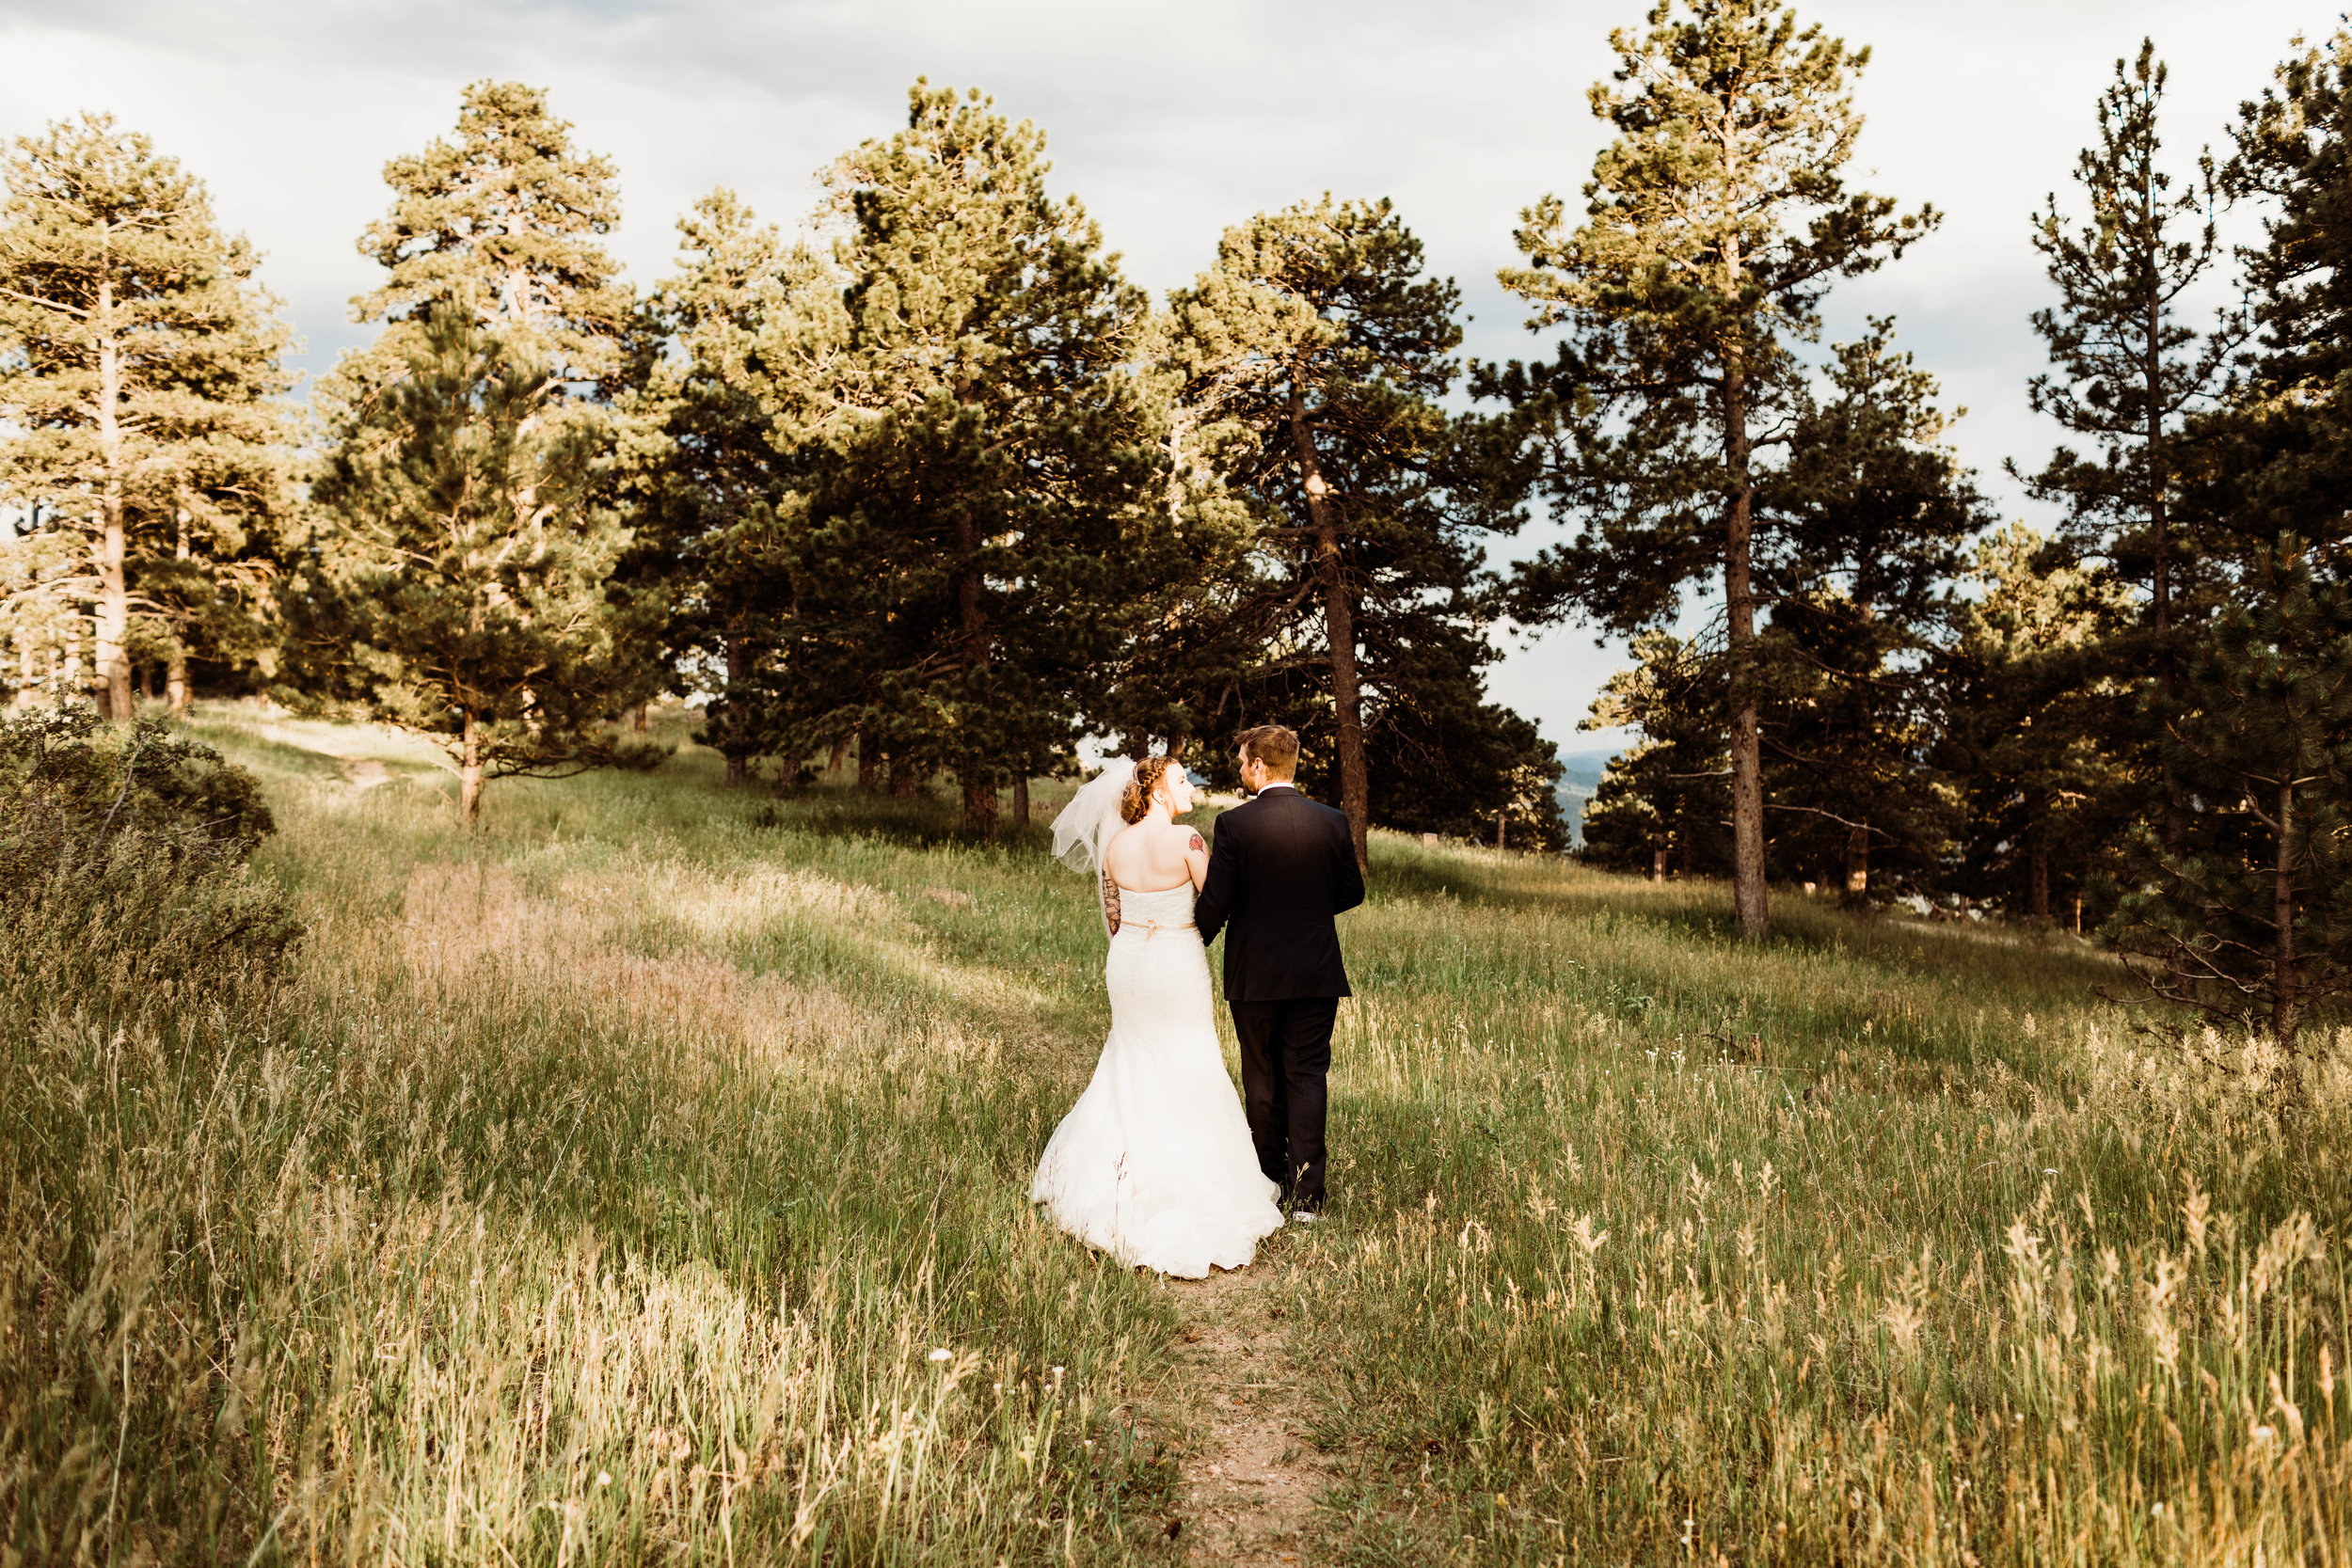 Golden Colorado Adventure Elopement in the Rocky Mountains | Colorado Adventure Weddings